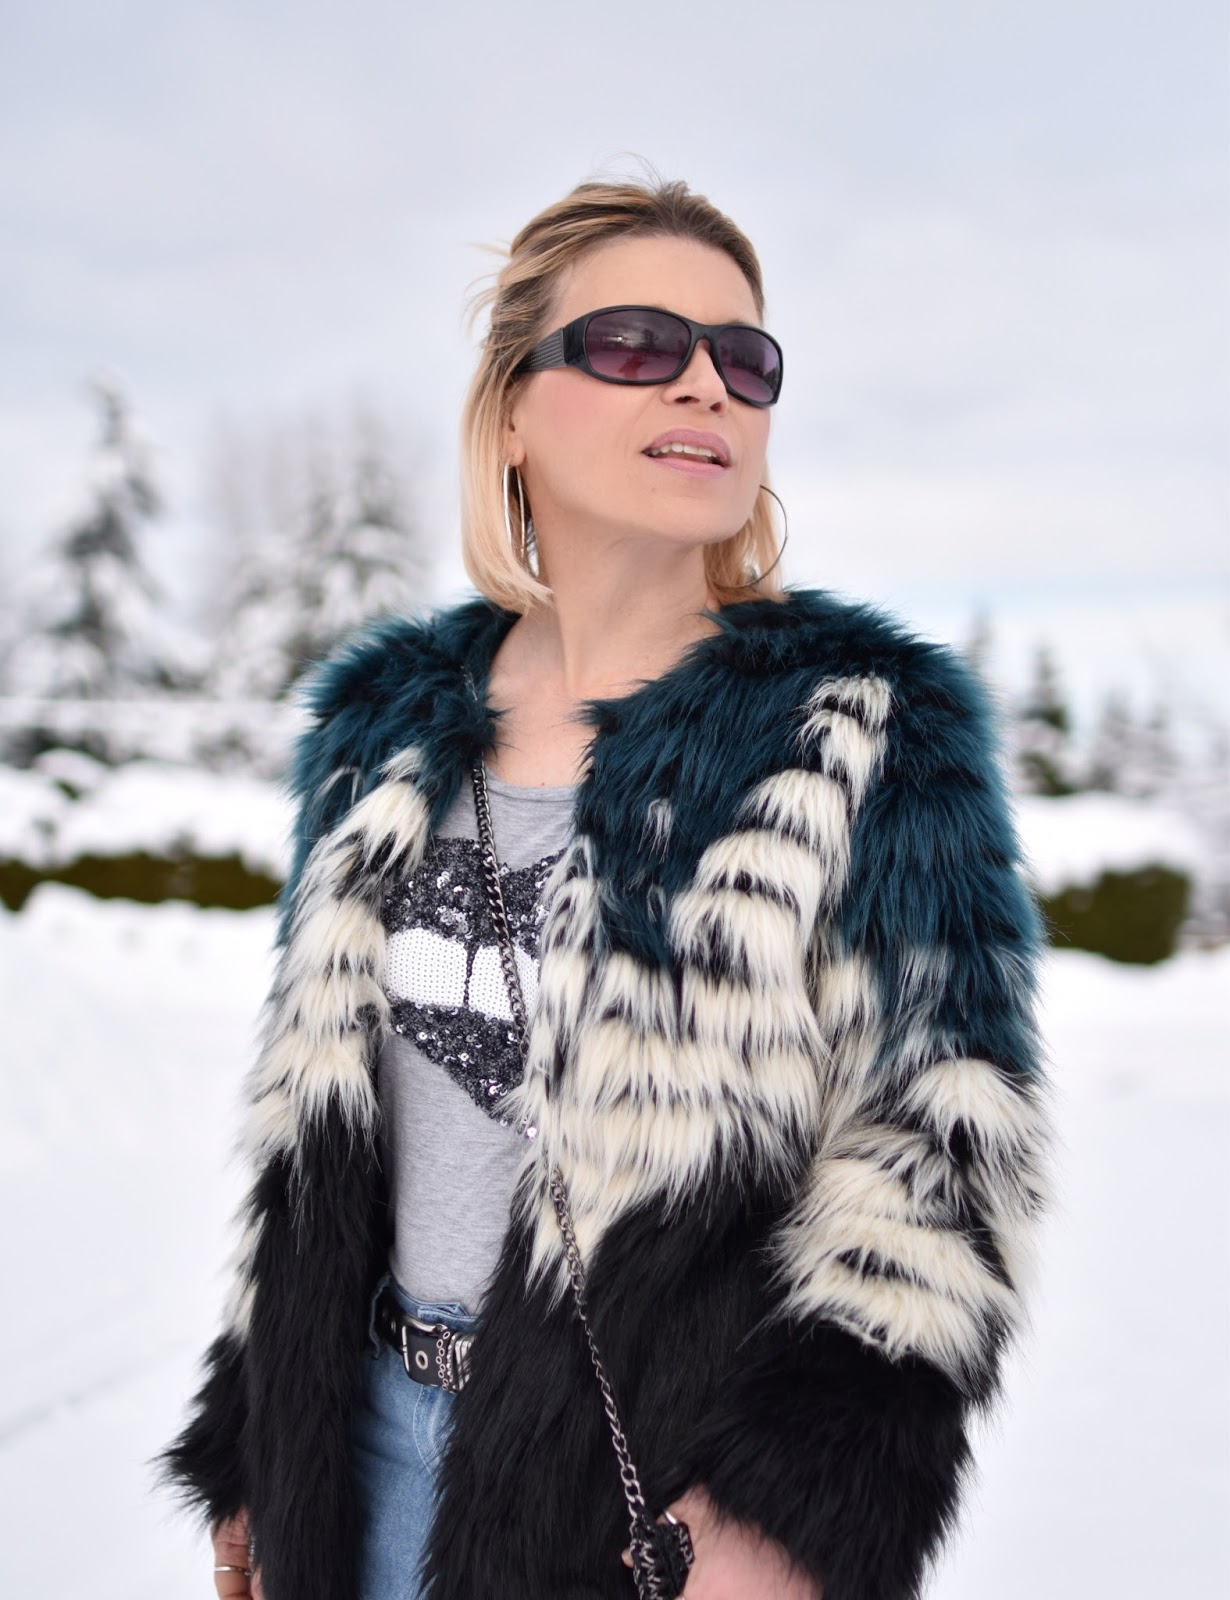 Monika Faulkner outfit inspiration - sequinned tee, colour-blocked faux-fur jacket, sunglasses